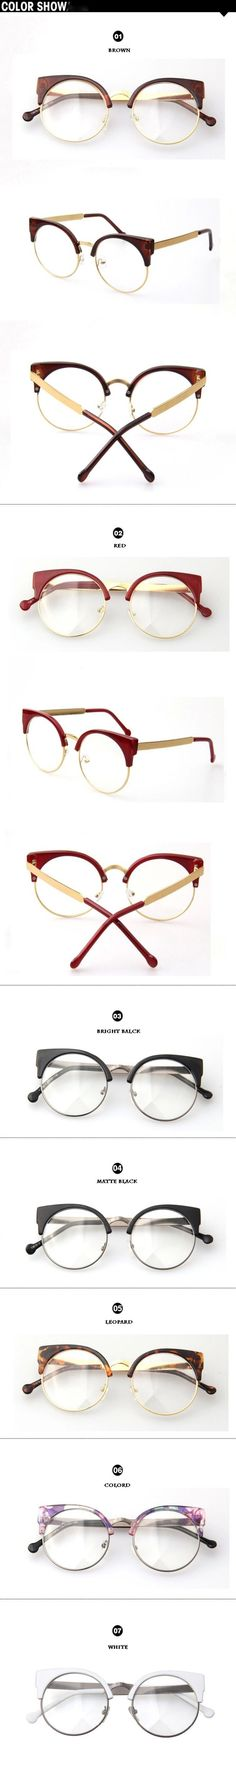 DRESSUUP Vintage Brand Designer Cat Eye Glasses Women Frame Glasses Clear Lens Eyeglasses Frame Women oculos de grau feminino-in Eyewear Frames from Women's Clothing & Accessories on Aliexpress.com | Alibaba Group